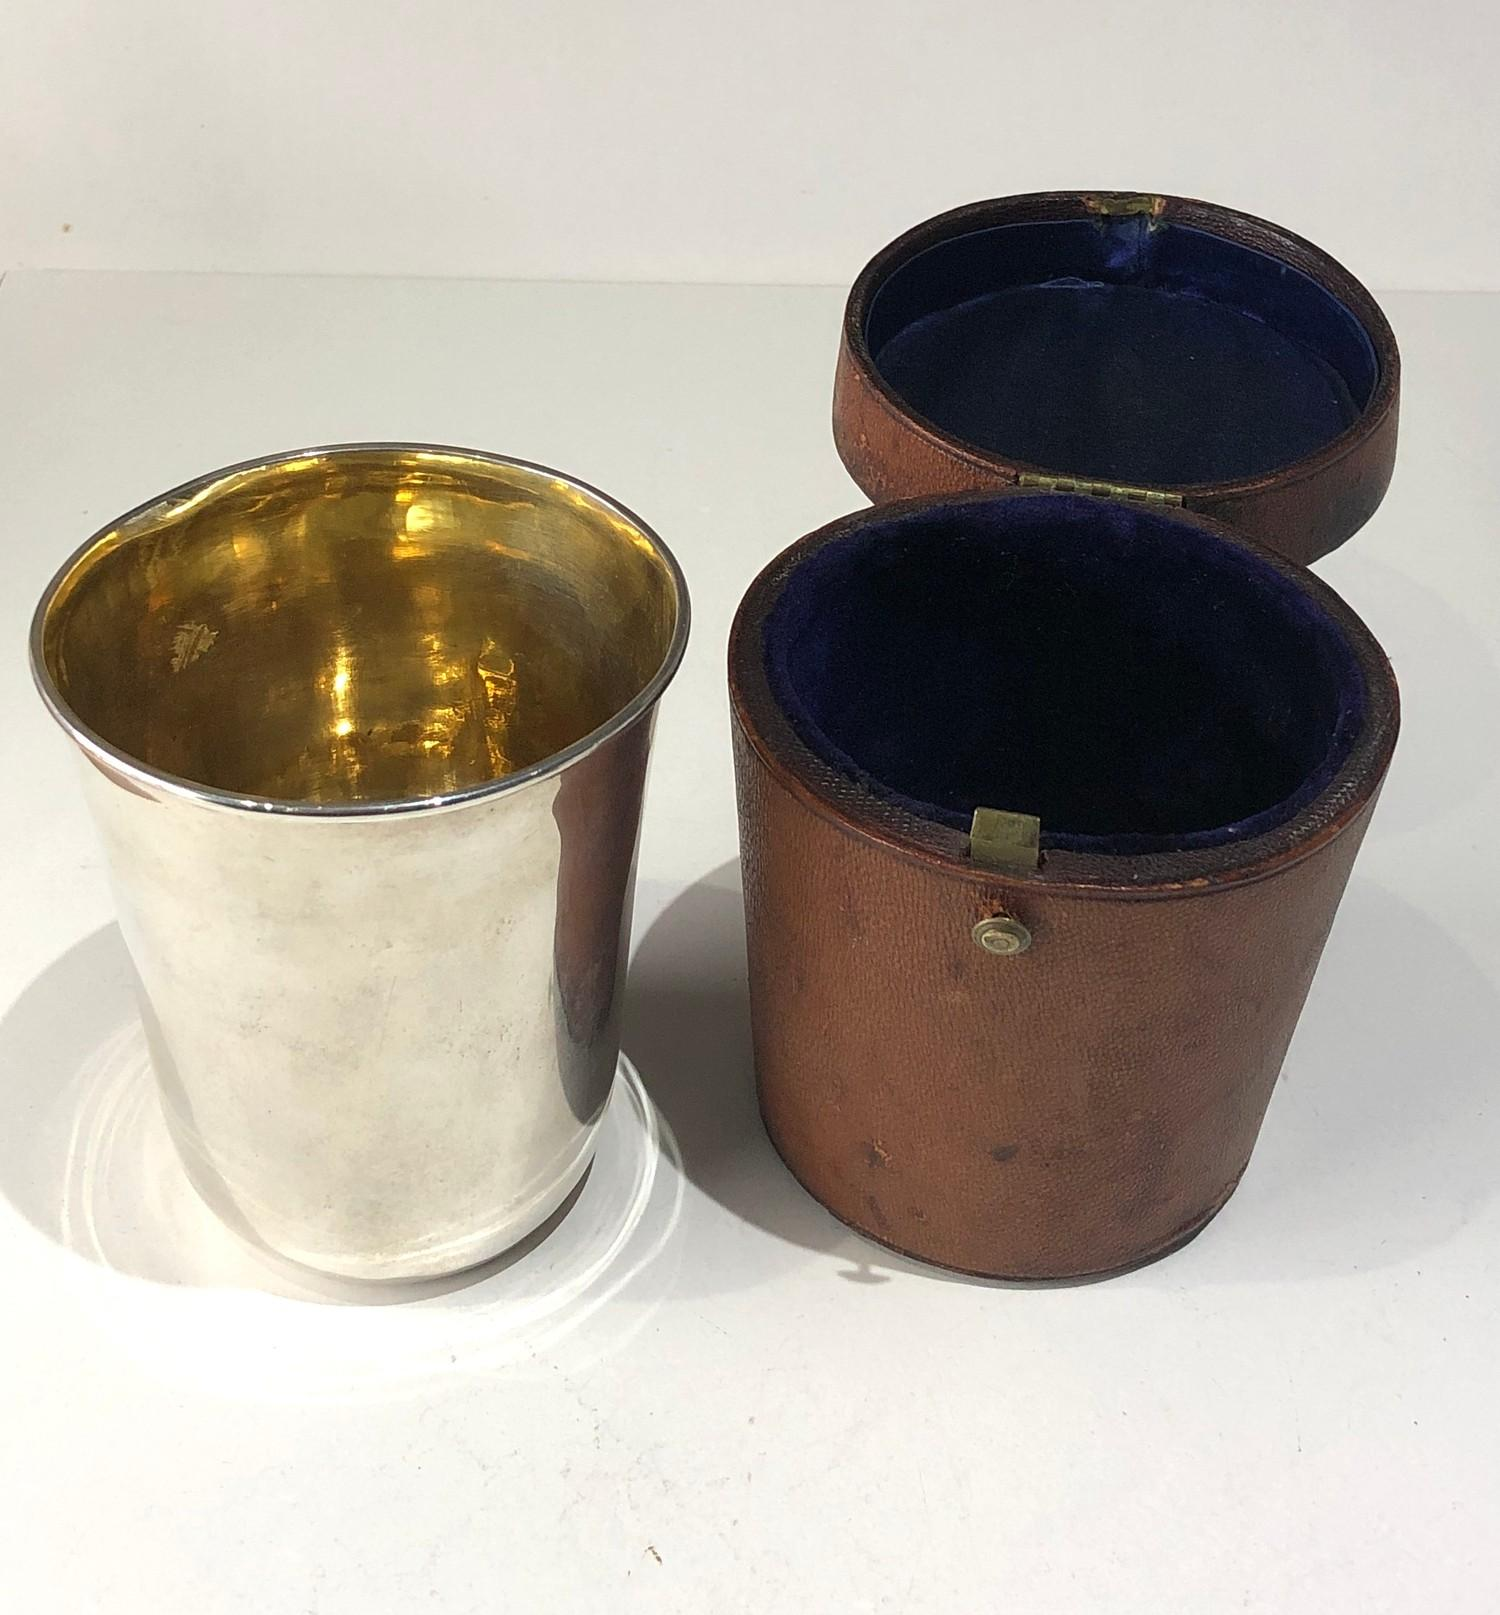 Rare antique Georgian silver leather cased beaker beaker measures approx 9cm high by 7.6cm dia at - Image 2 of 6